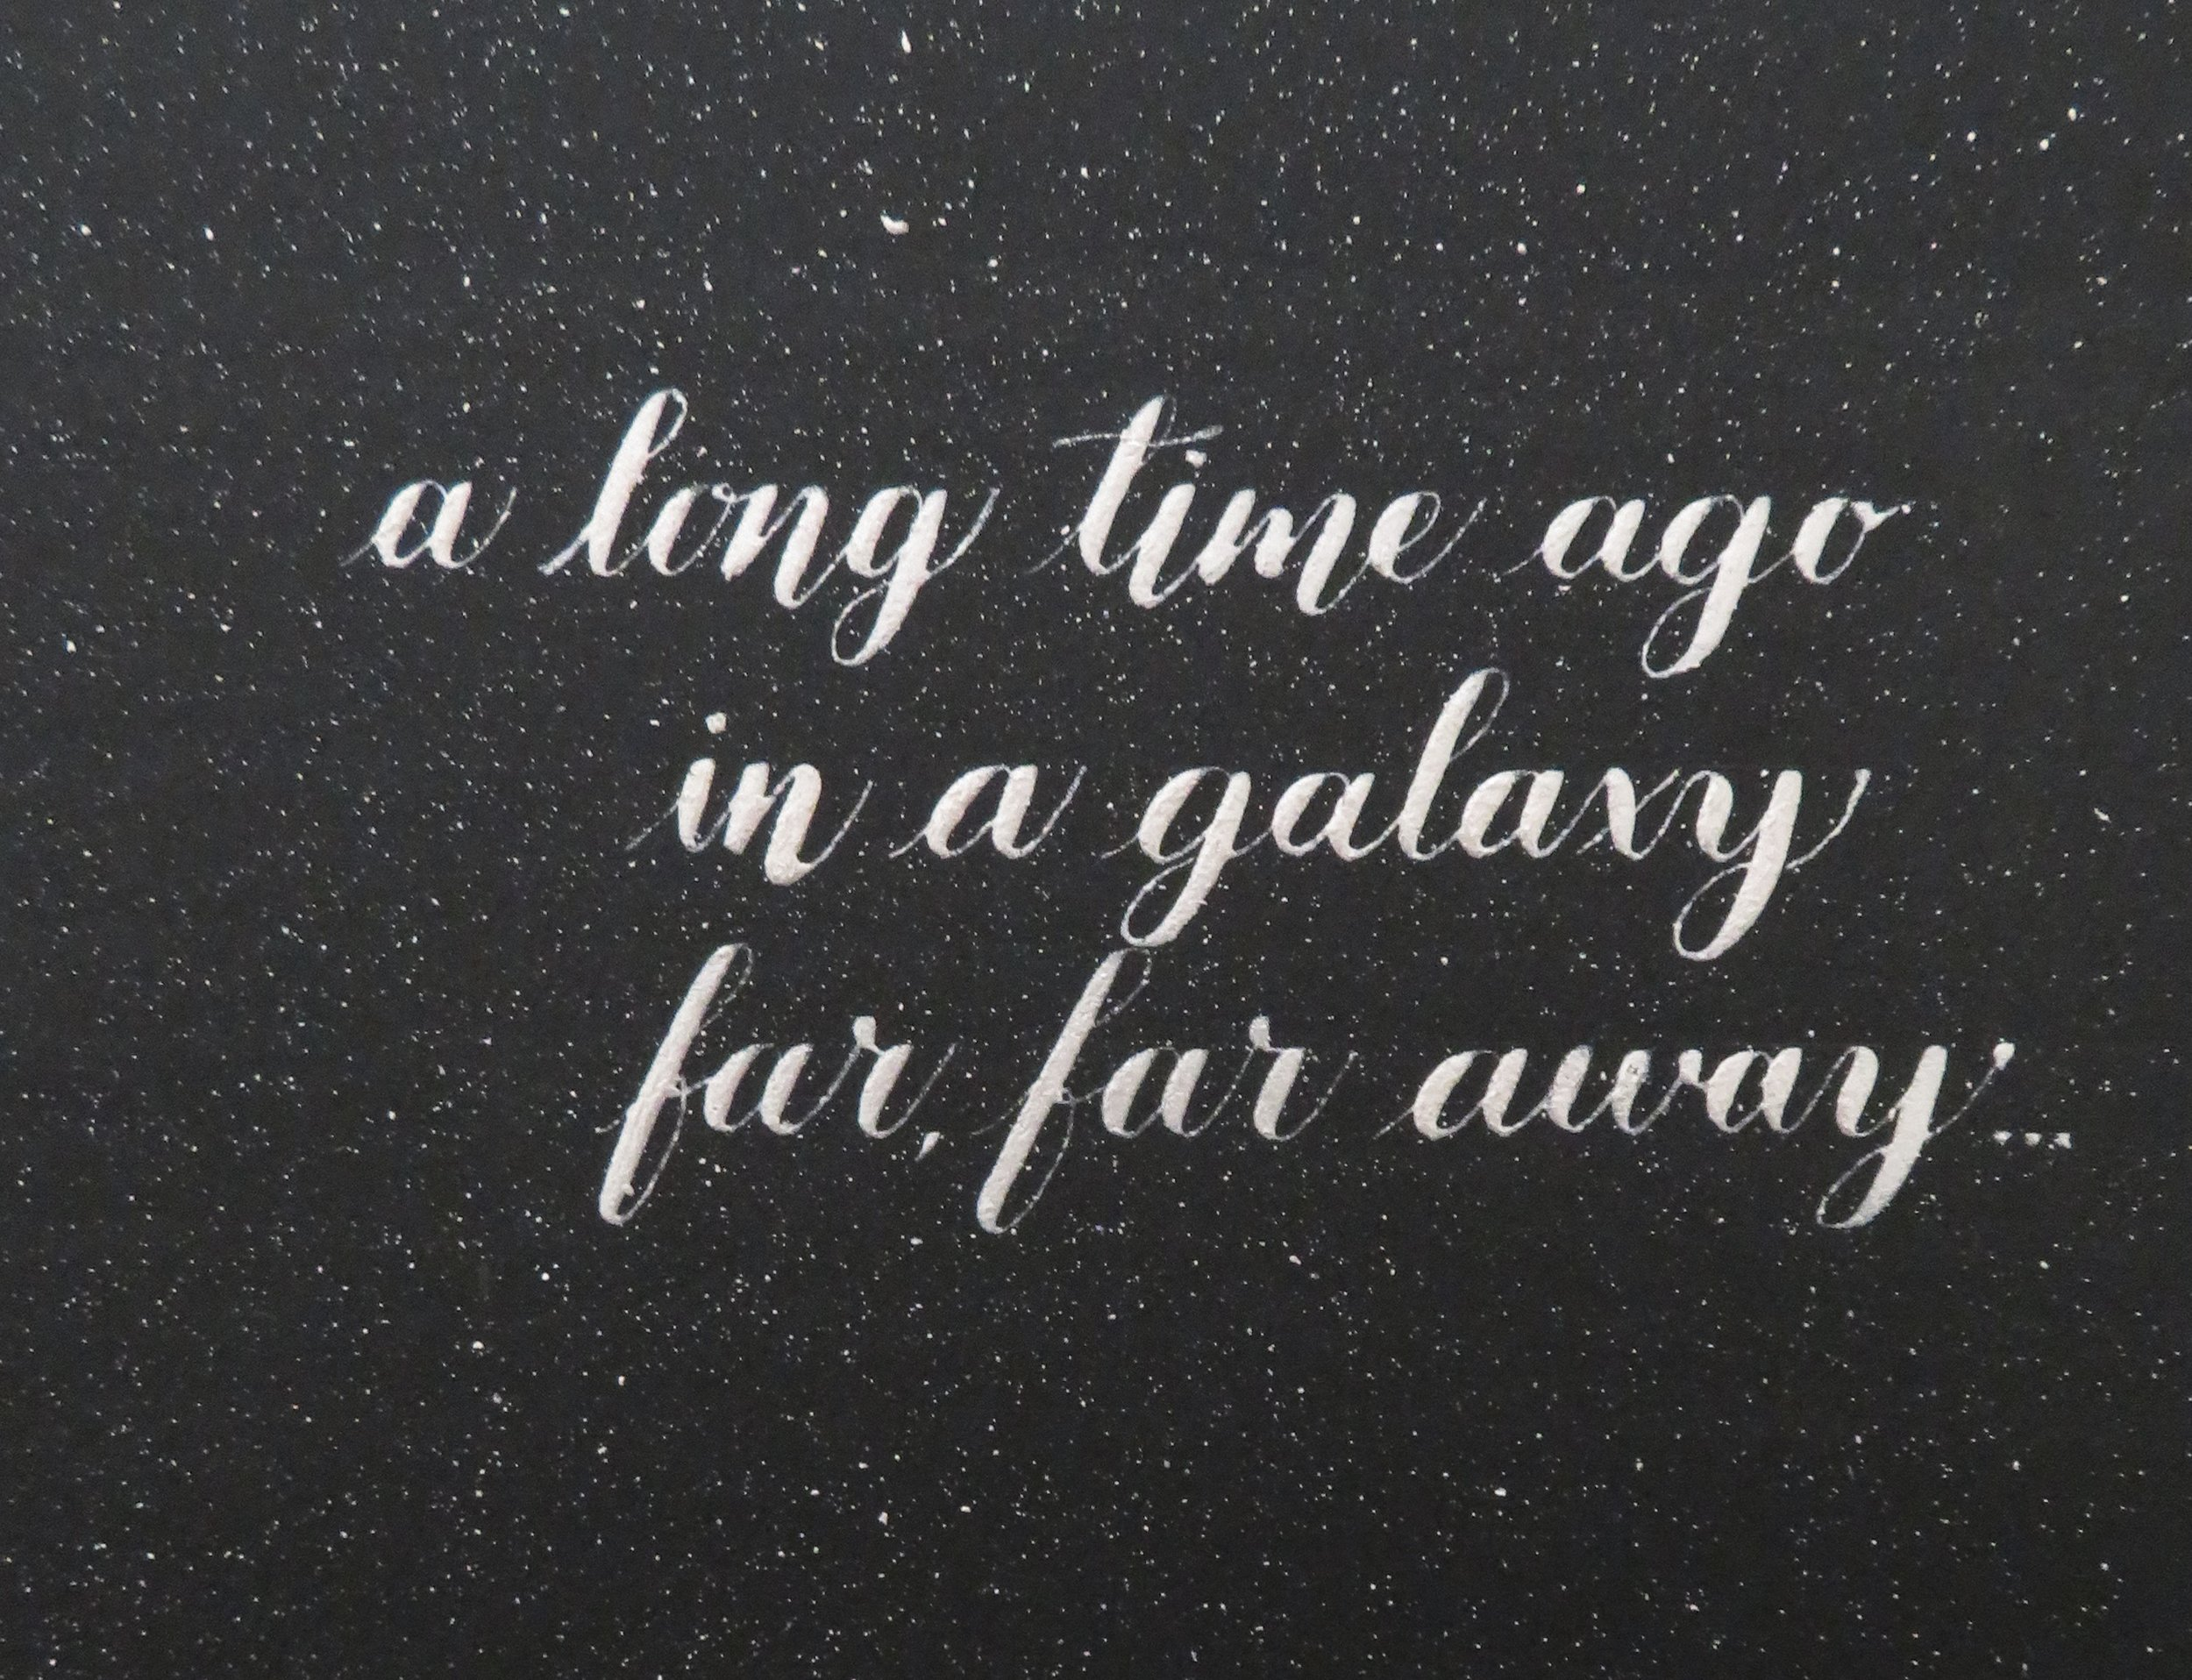 Storytime Calligraphy & Design Star Wars A Long Long Time Ago Frase